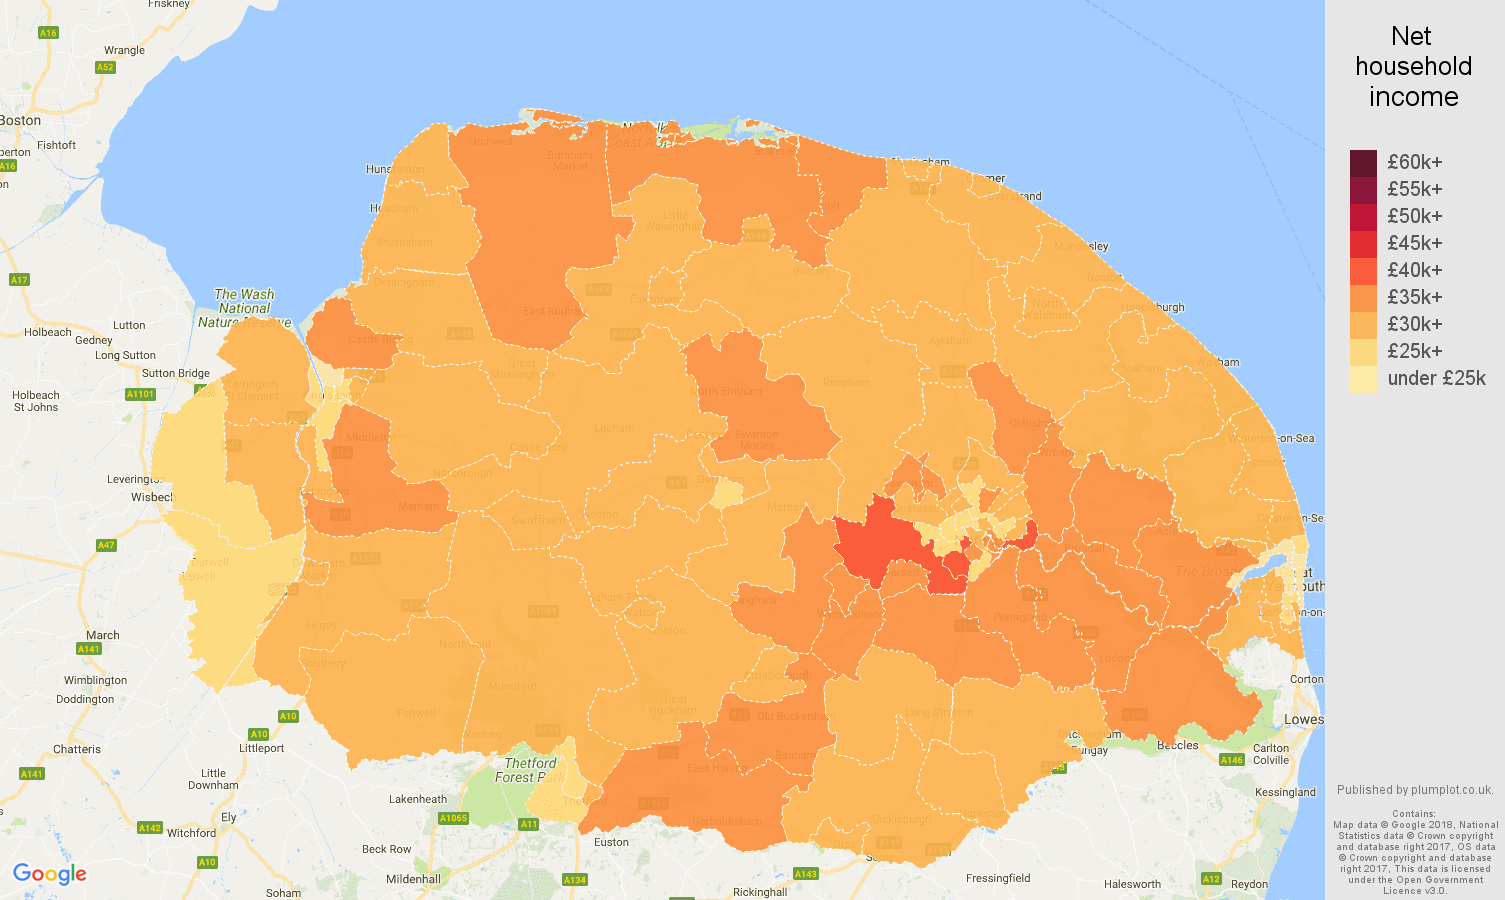 Norfolk net household income map